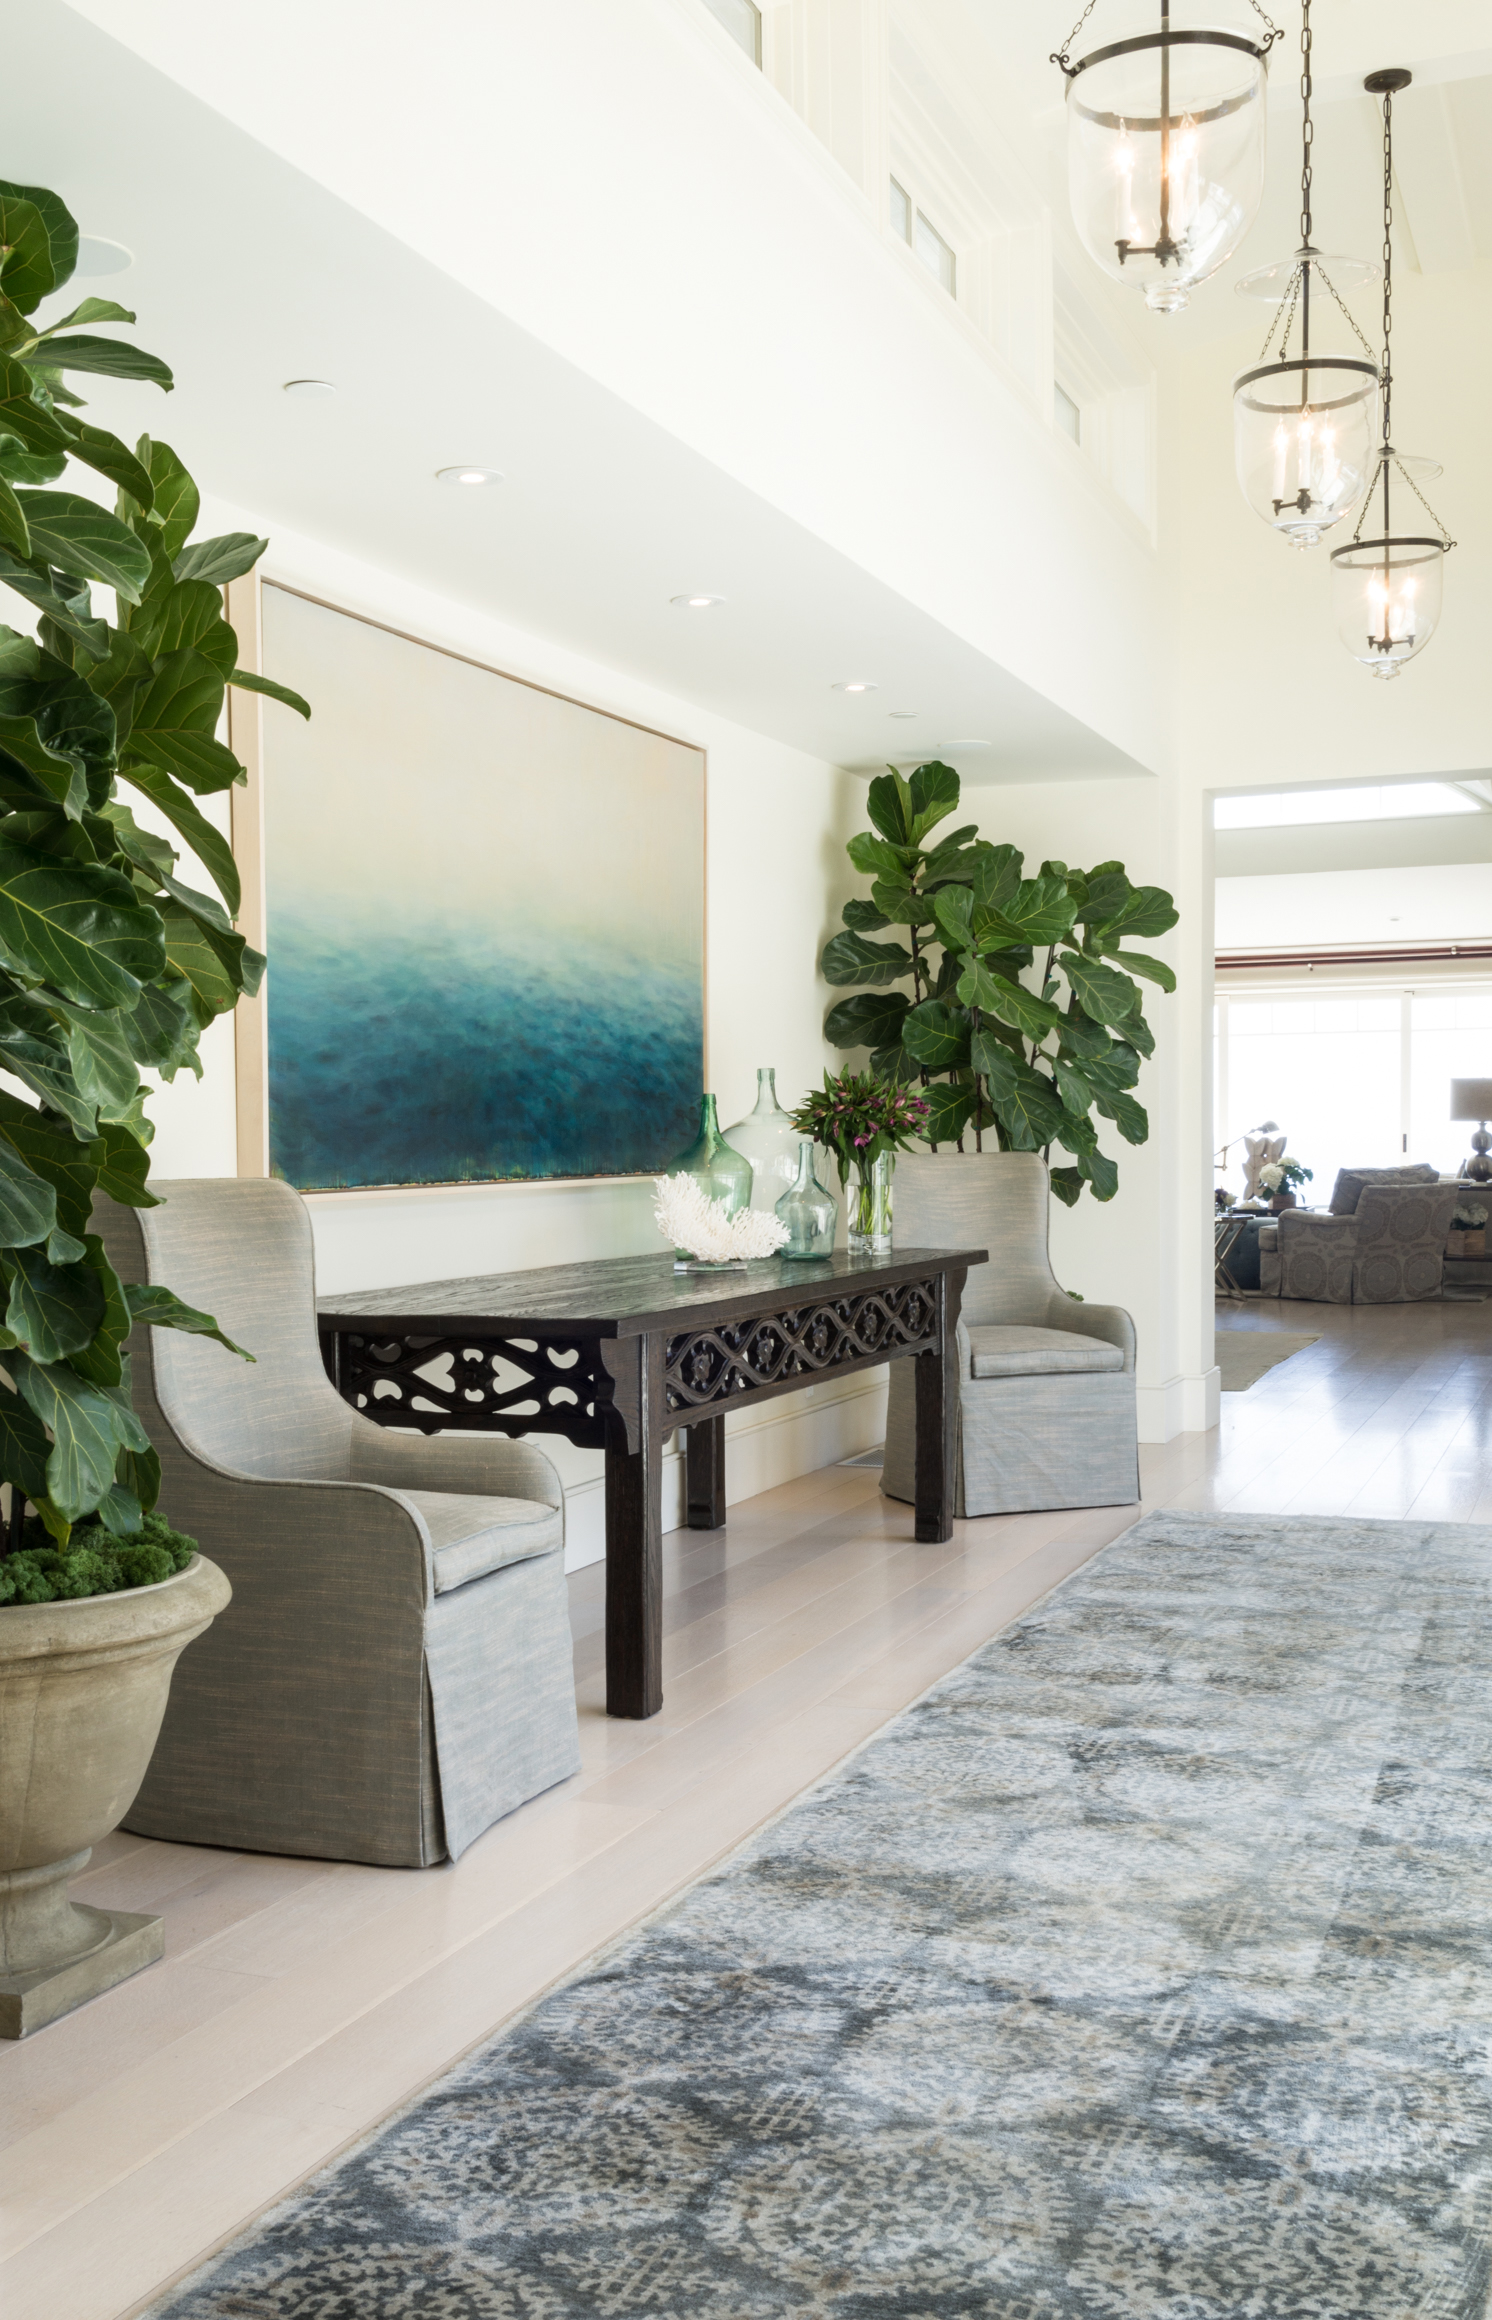 Elegant Coastal Design in Southern California  - Tranquil beach tones for a relaxing, yet refined experience.